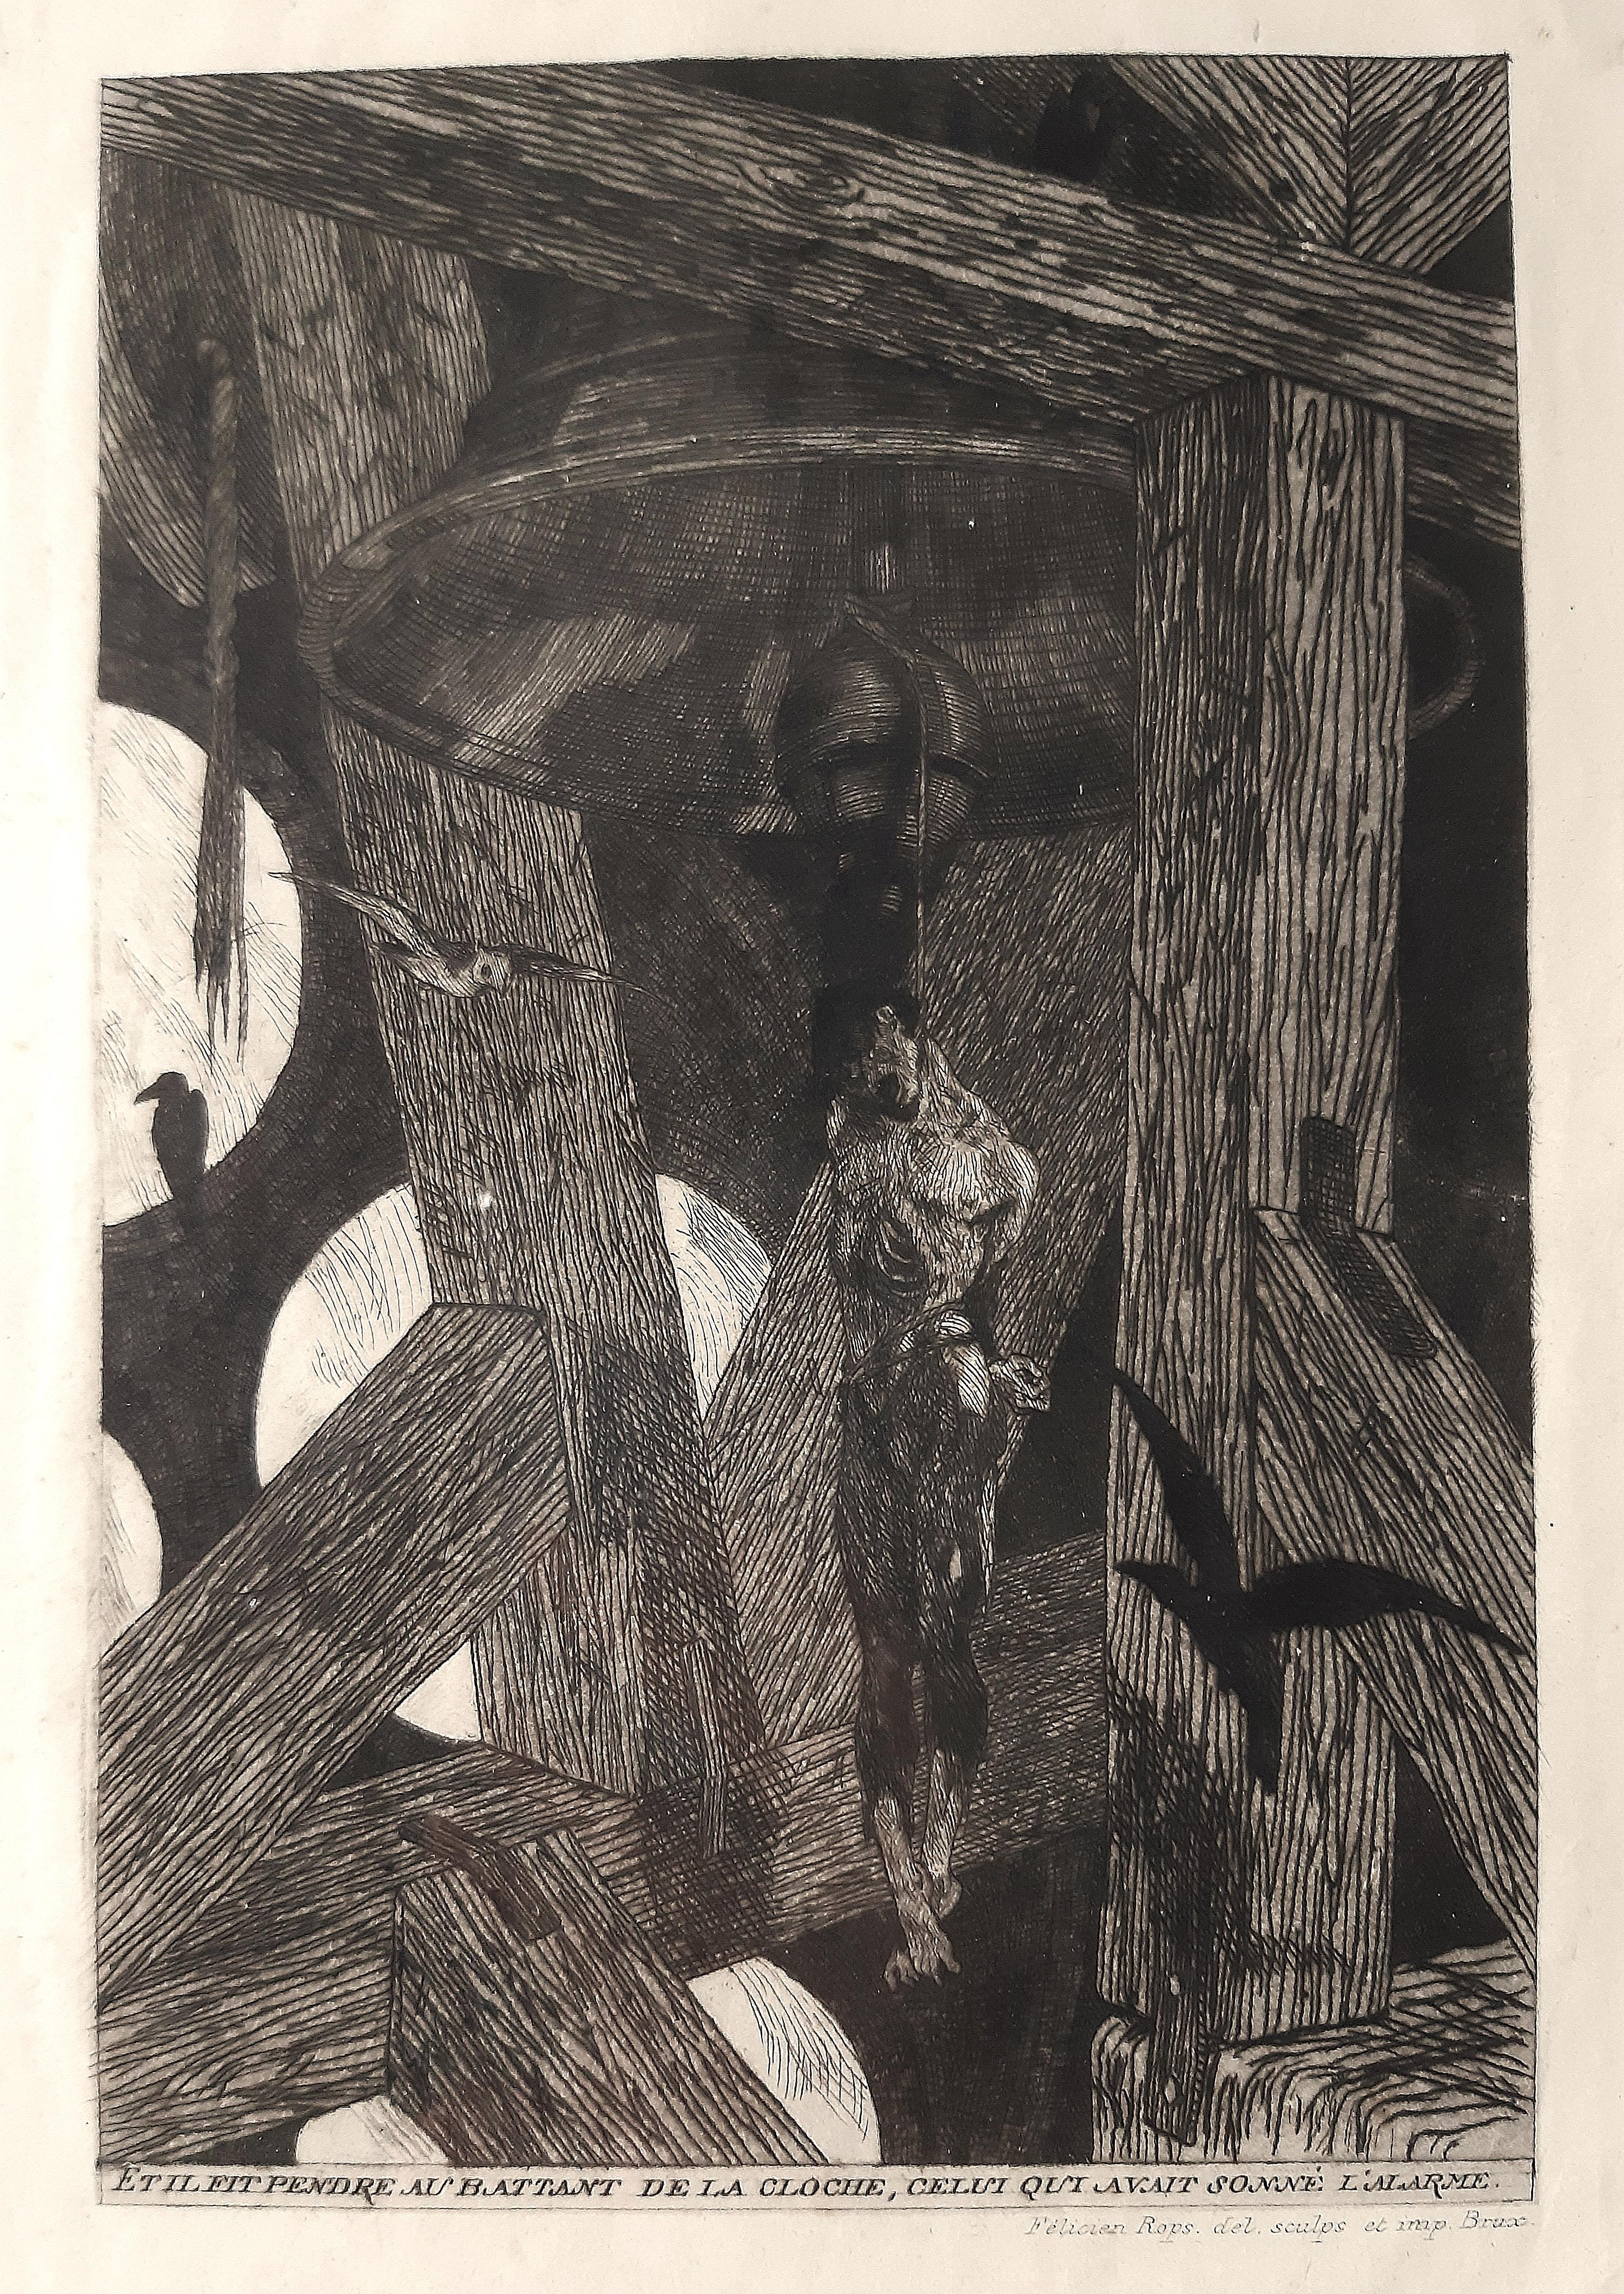 Le Pendu (The Hanged Man) - Original Etching by Félicien Rops - 1868